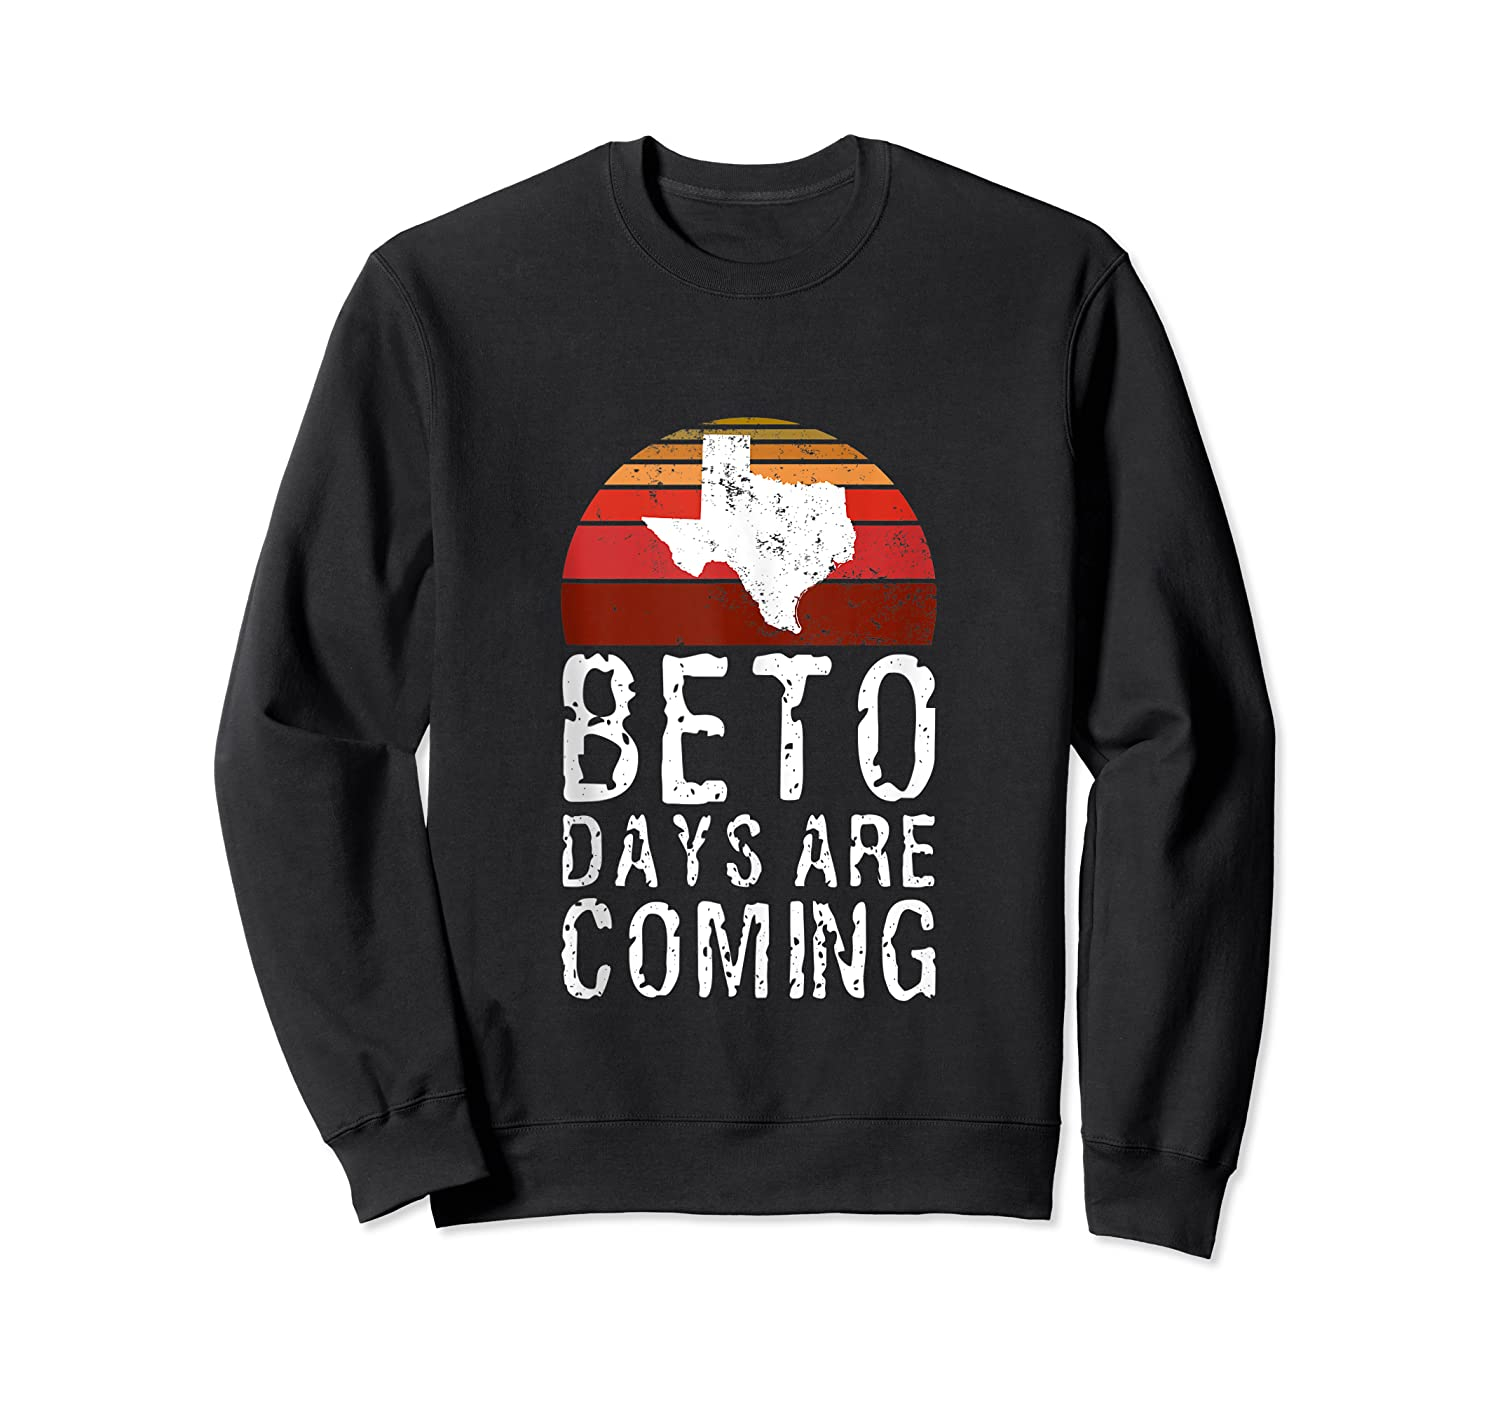 Beto Days Are Coming Funny Election Political Novelty Gift Tank Top Shirts Crewneck Sweater